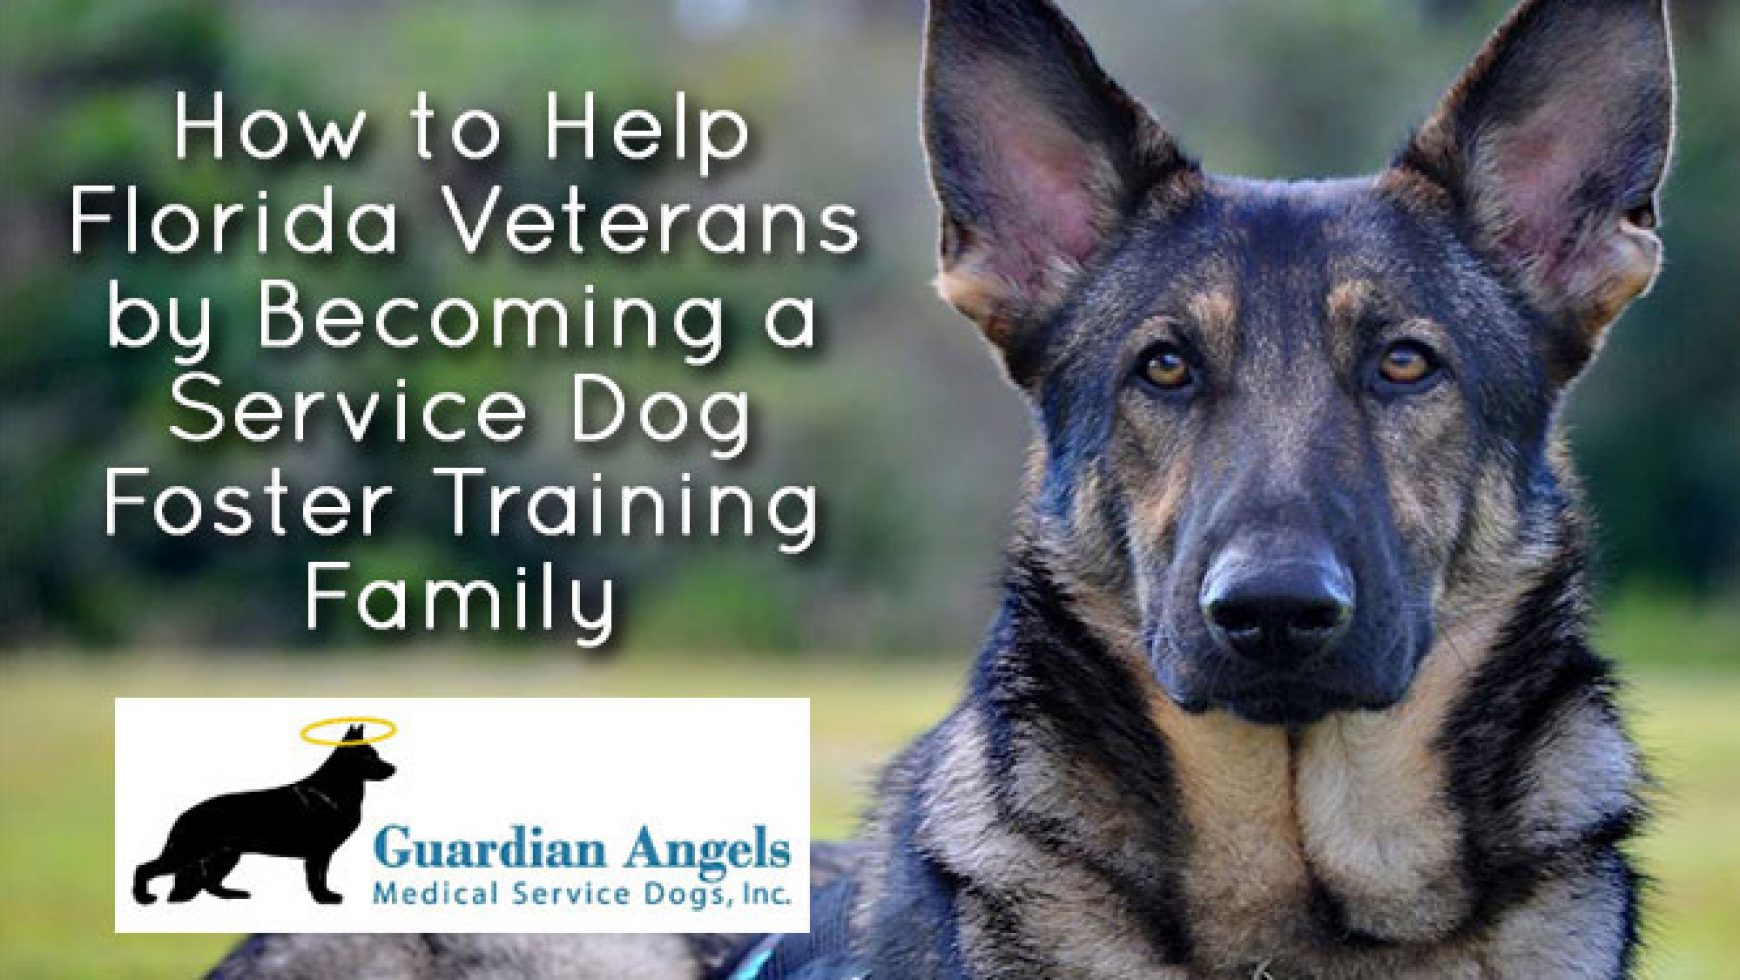 How to Help Florida Veterans by Becoming a Service Dog Foster Training Family